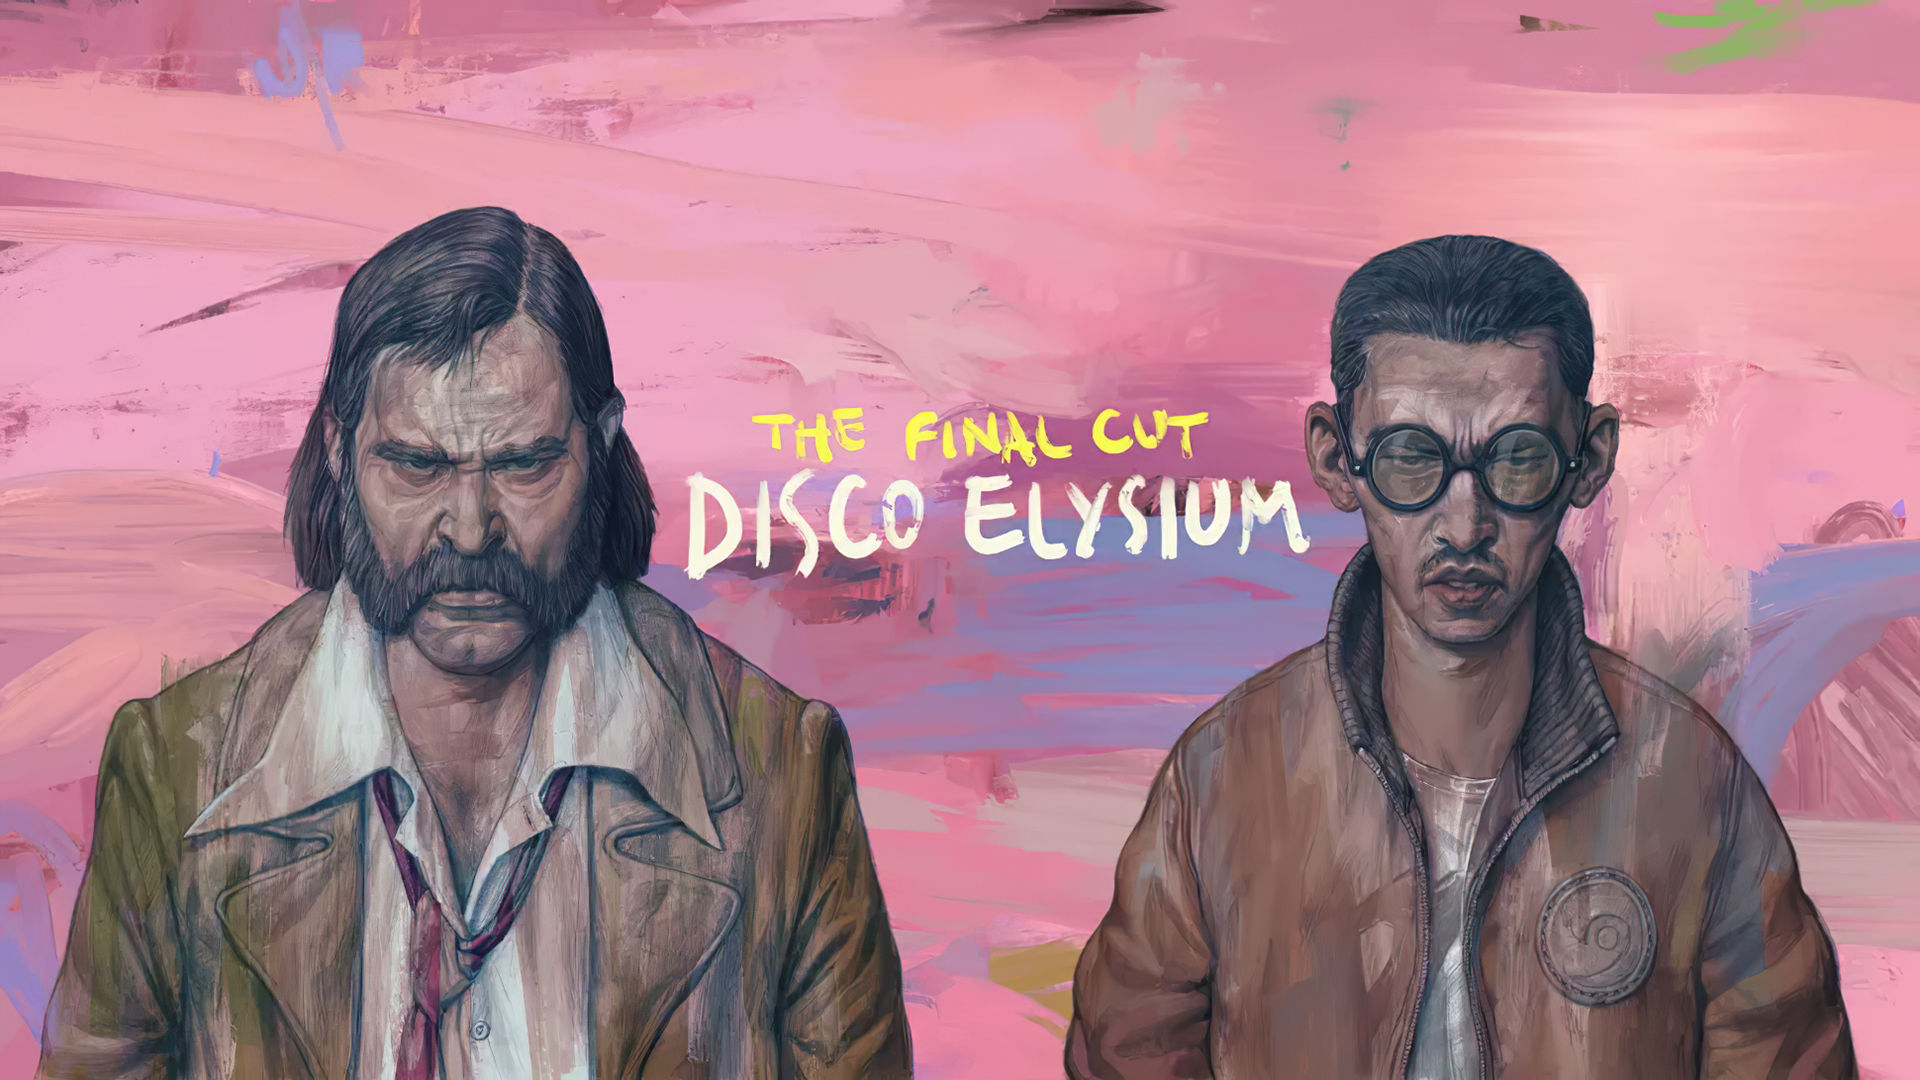 Two main characters stand side-by-side in front of a pink sky in Disco Elysium: The Final Cut.